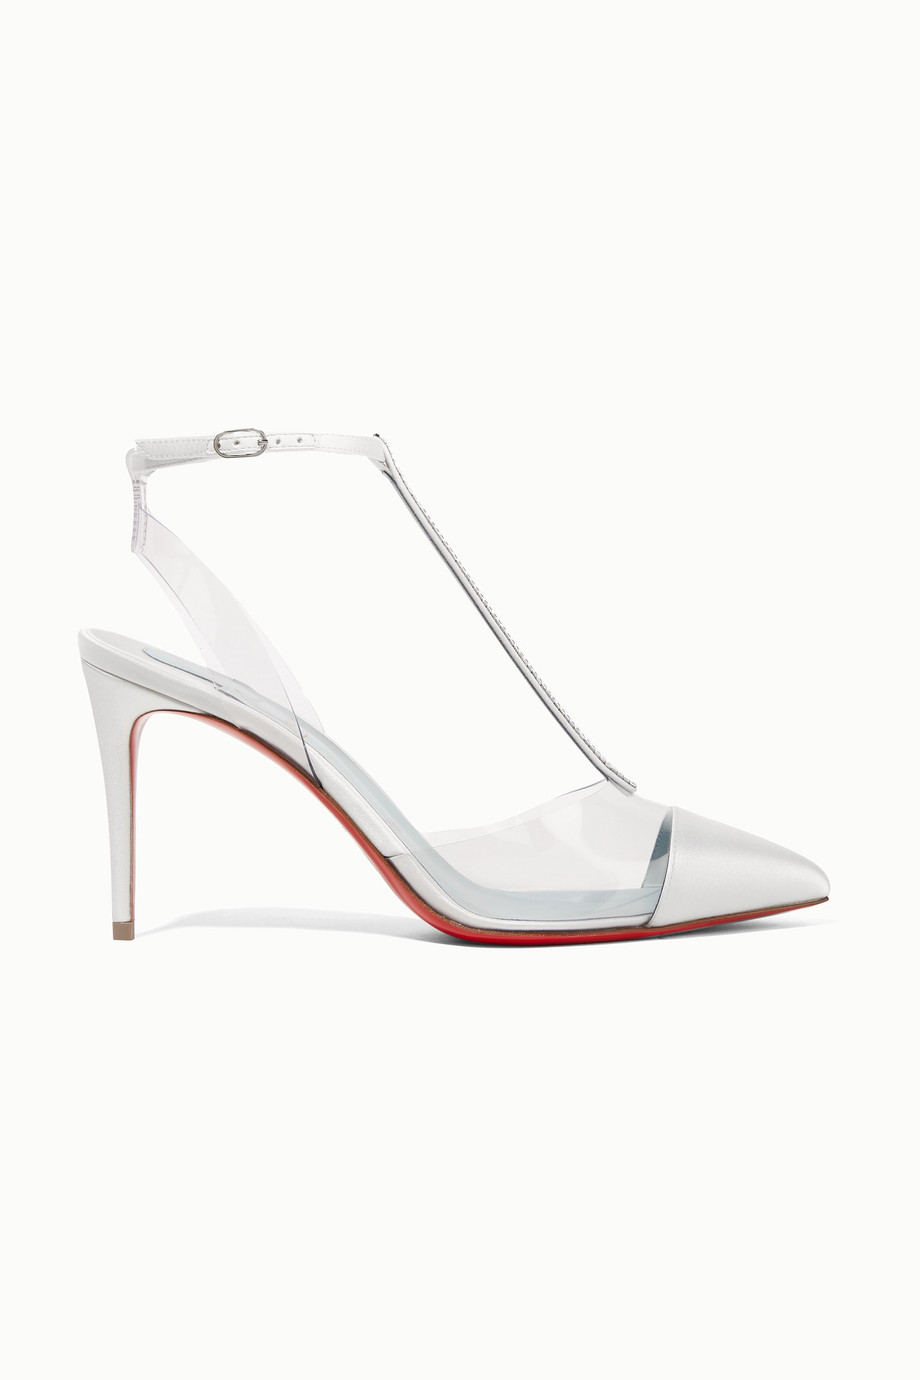 Christian Louboutin Nosy 85 crystal-embellished satin and PVC pumps